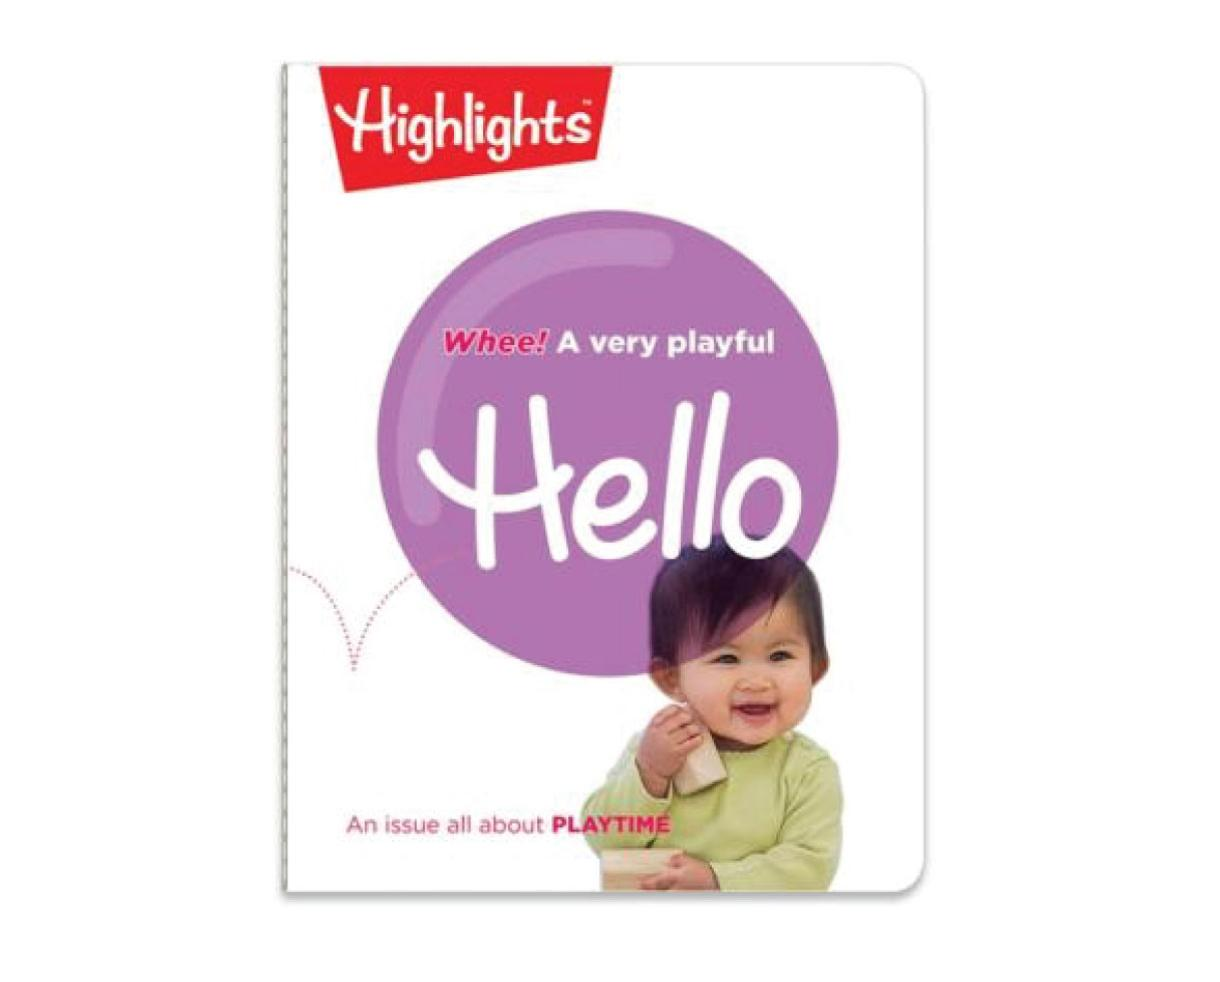 $29 for One-Year Highlights Magazine Subscription - Choose from Four Titles for Ages 0-12 (52% Off Newsstand)